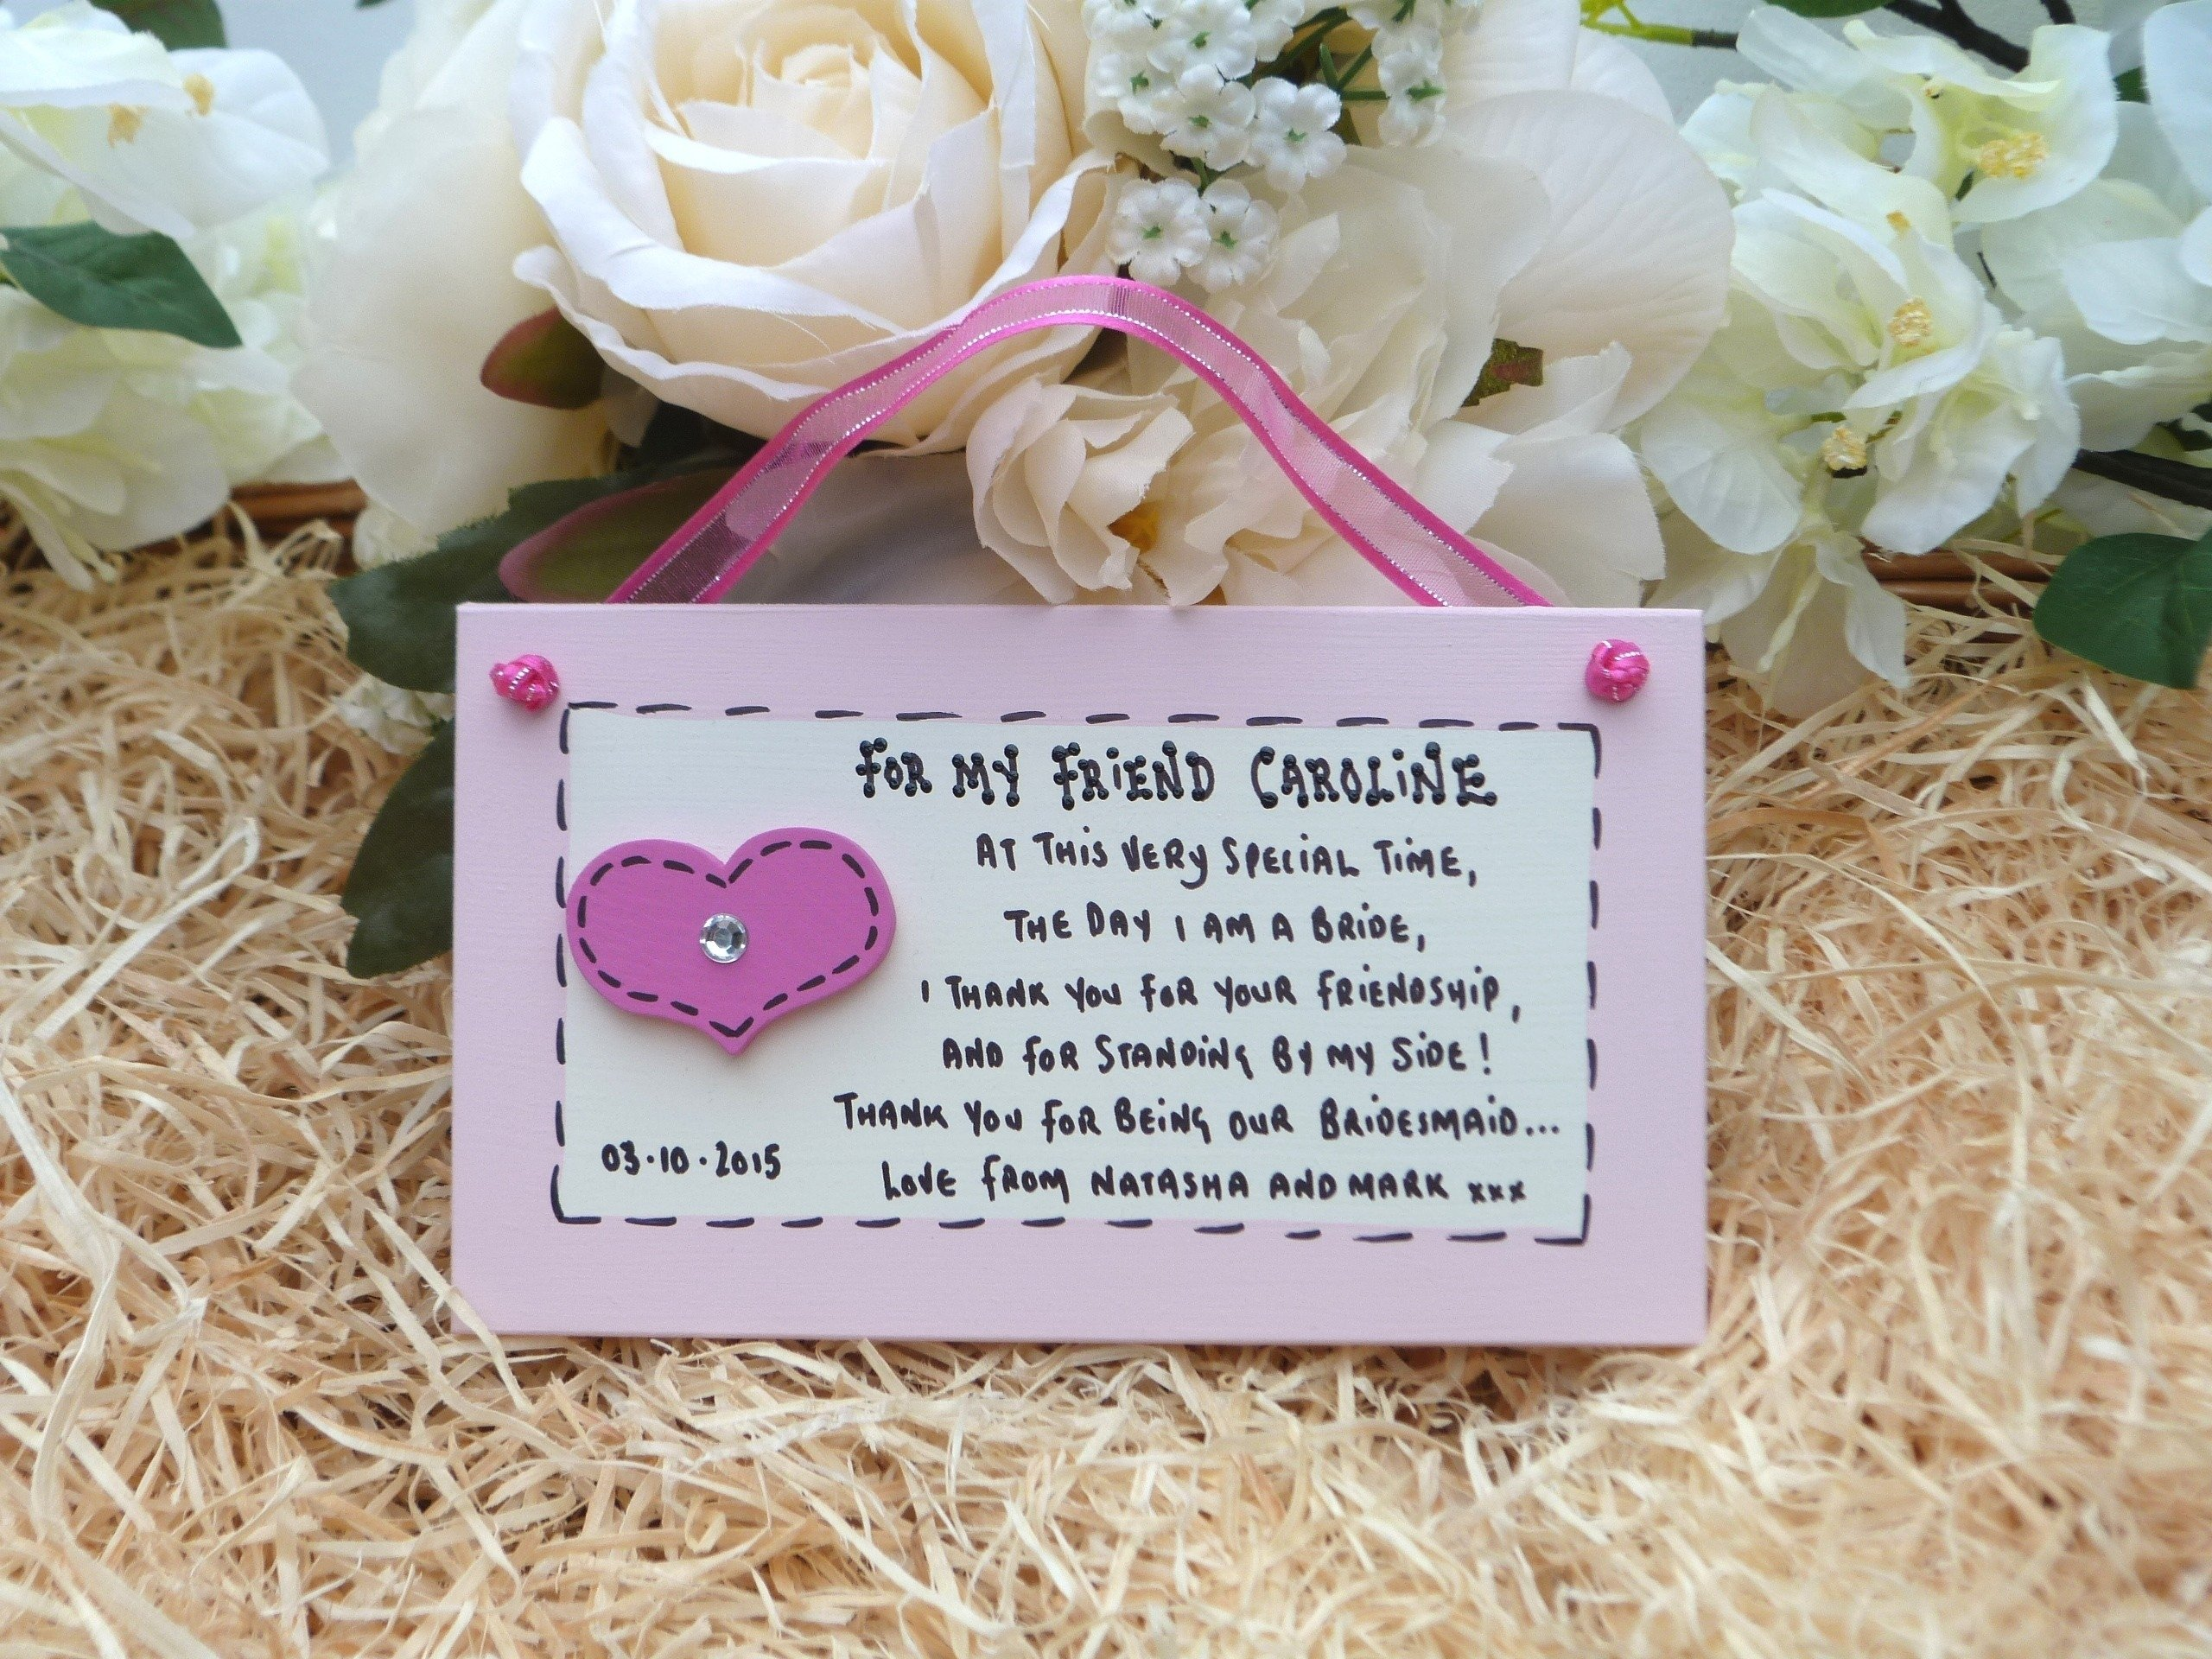 10 Beautiful Maid Of Honor Gift To Bride Ideas personalised keepsake gift for friend of bride bridesmaid or maid 2021